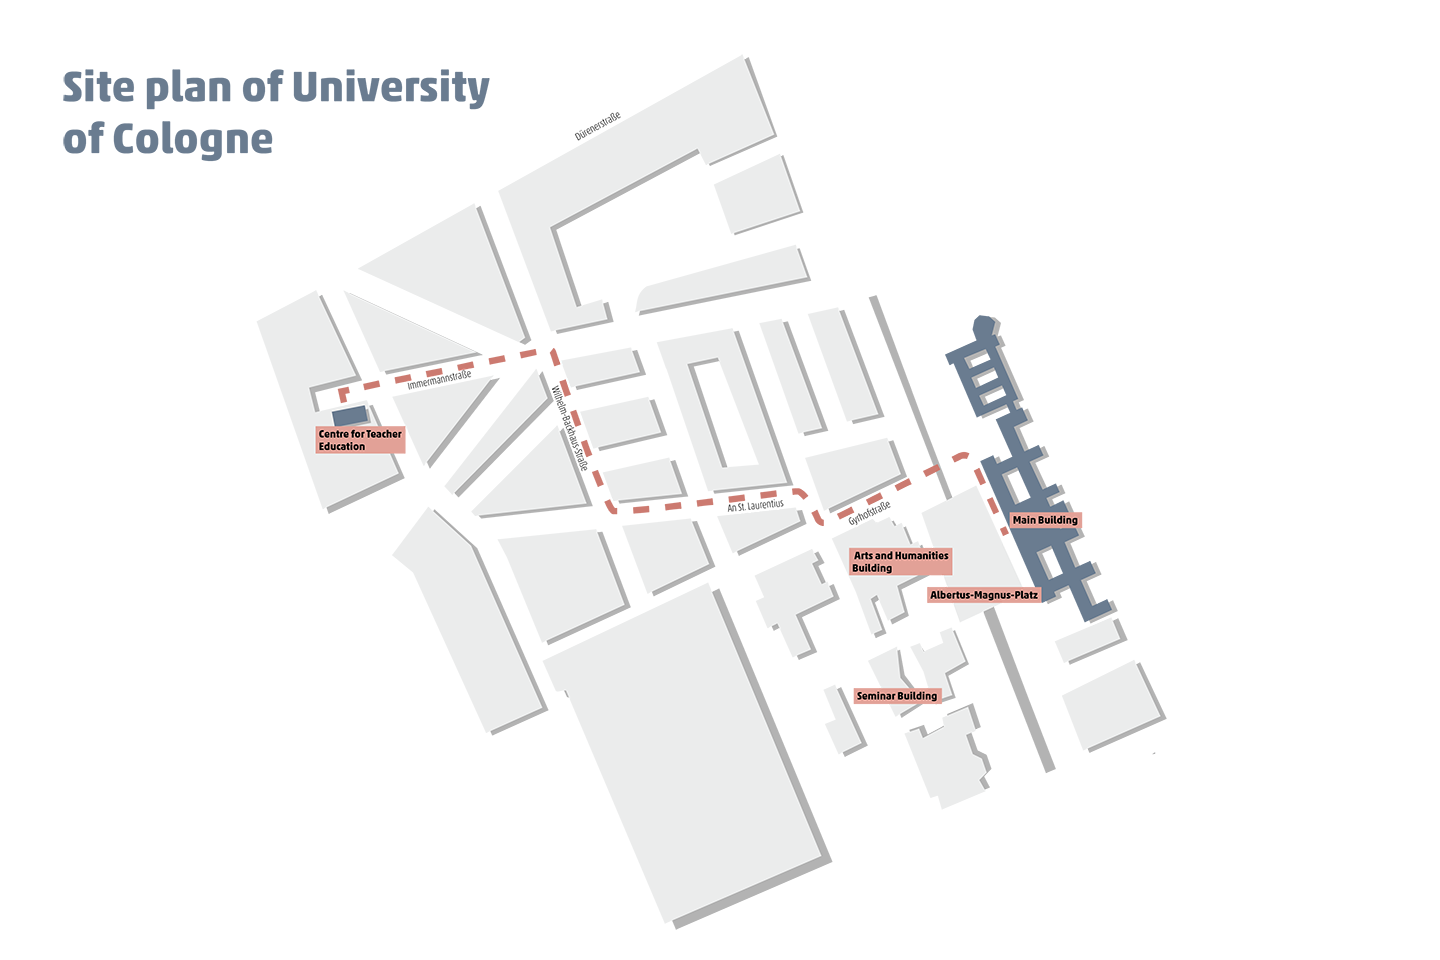 Site plan of University of Cologne